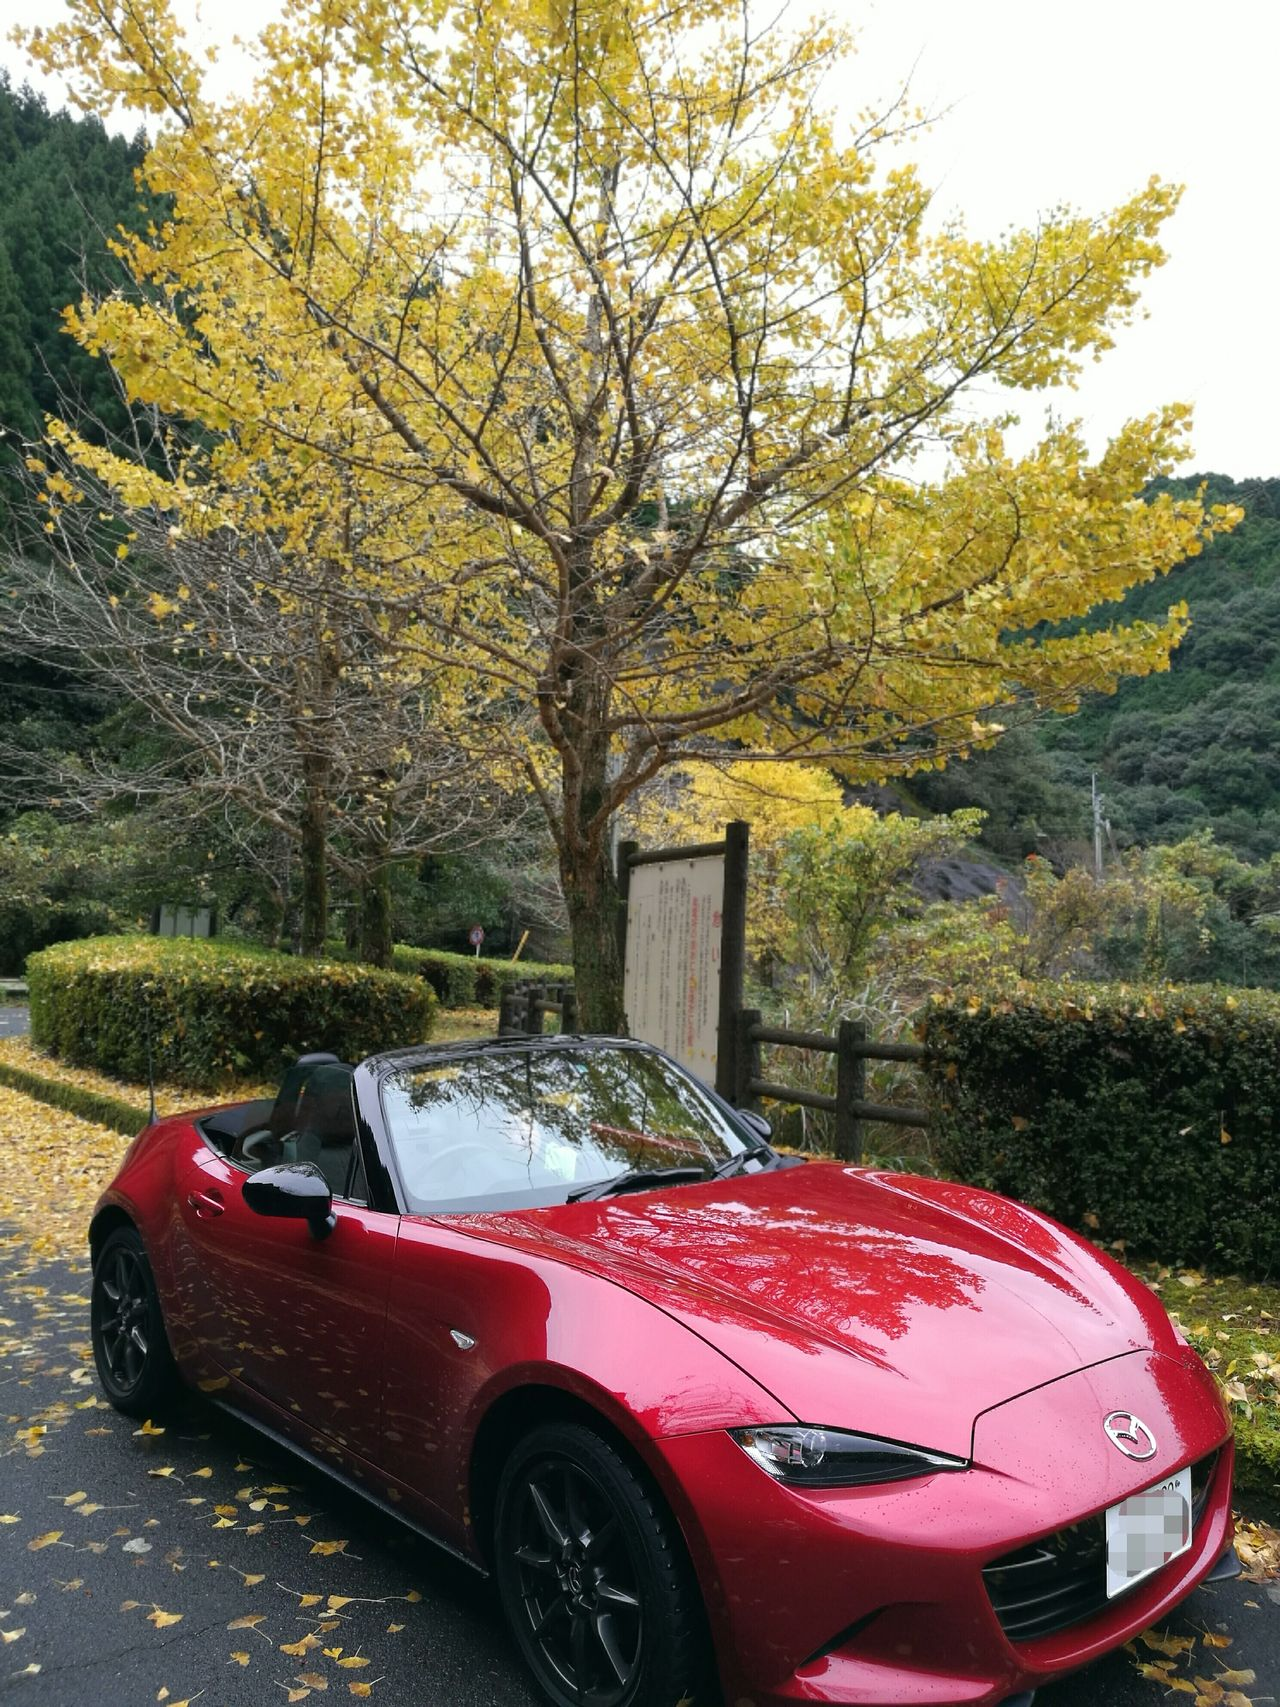 Car Tree Transportation Mode Of Transport Red Land Vehicle No People Nature Day Outdoors Racecar Motorsport Nature Autumn Trees Reaf Beauty In Nature Mazda MX-5 Mx5 Miata マツダ ロードスター Roadster